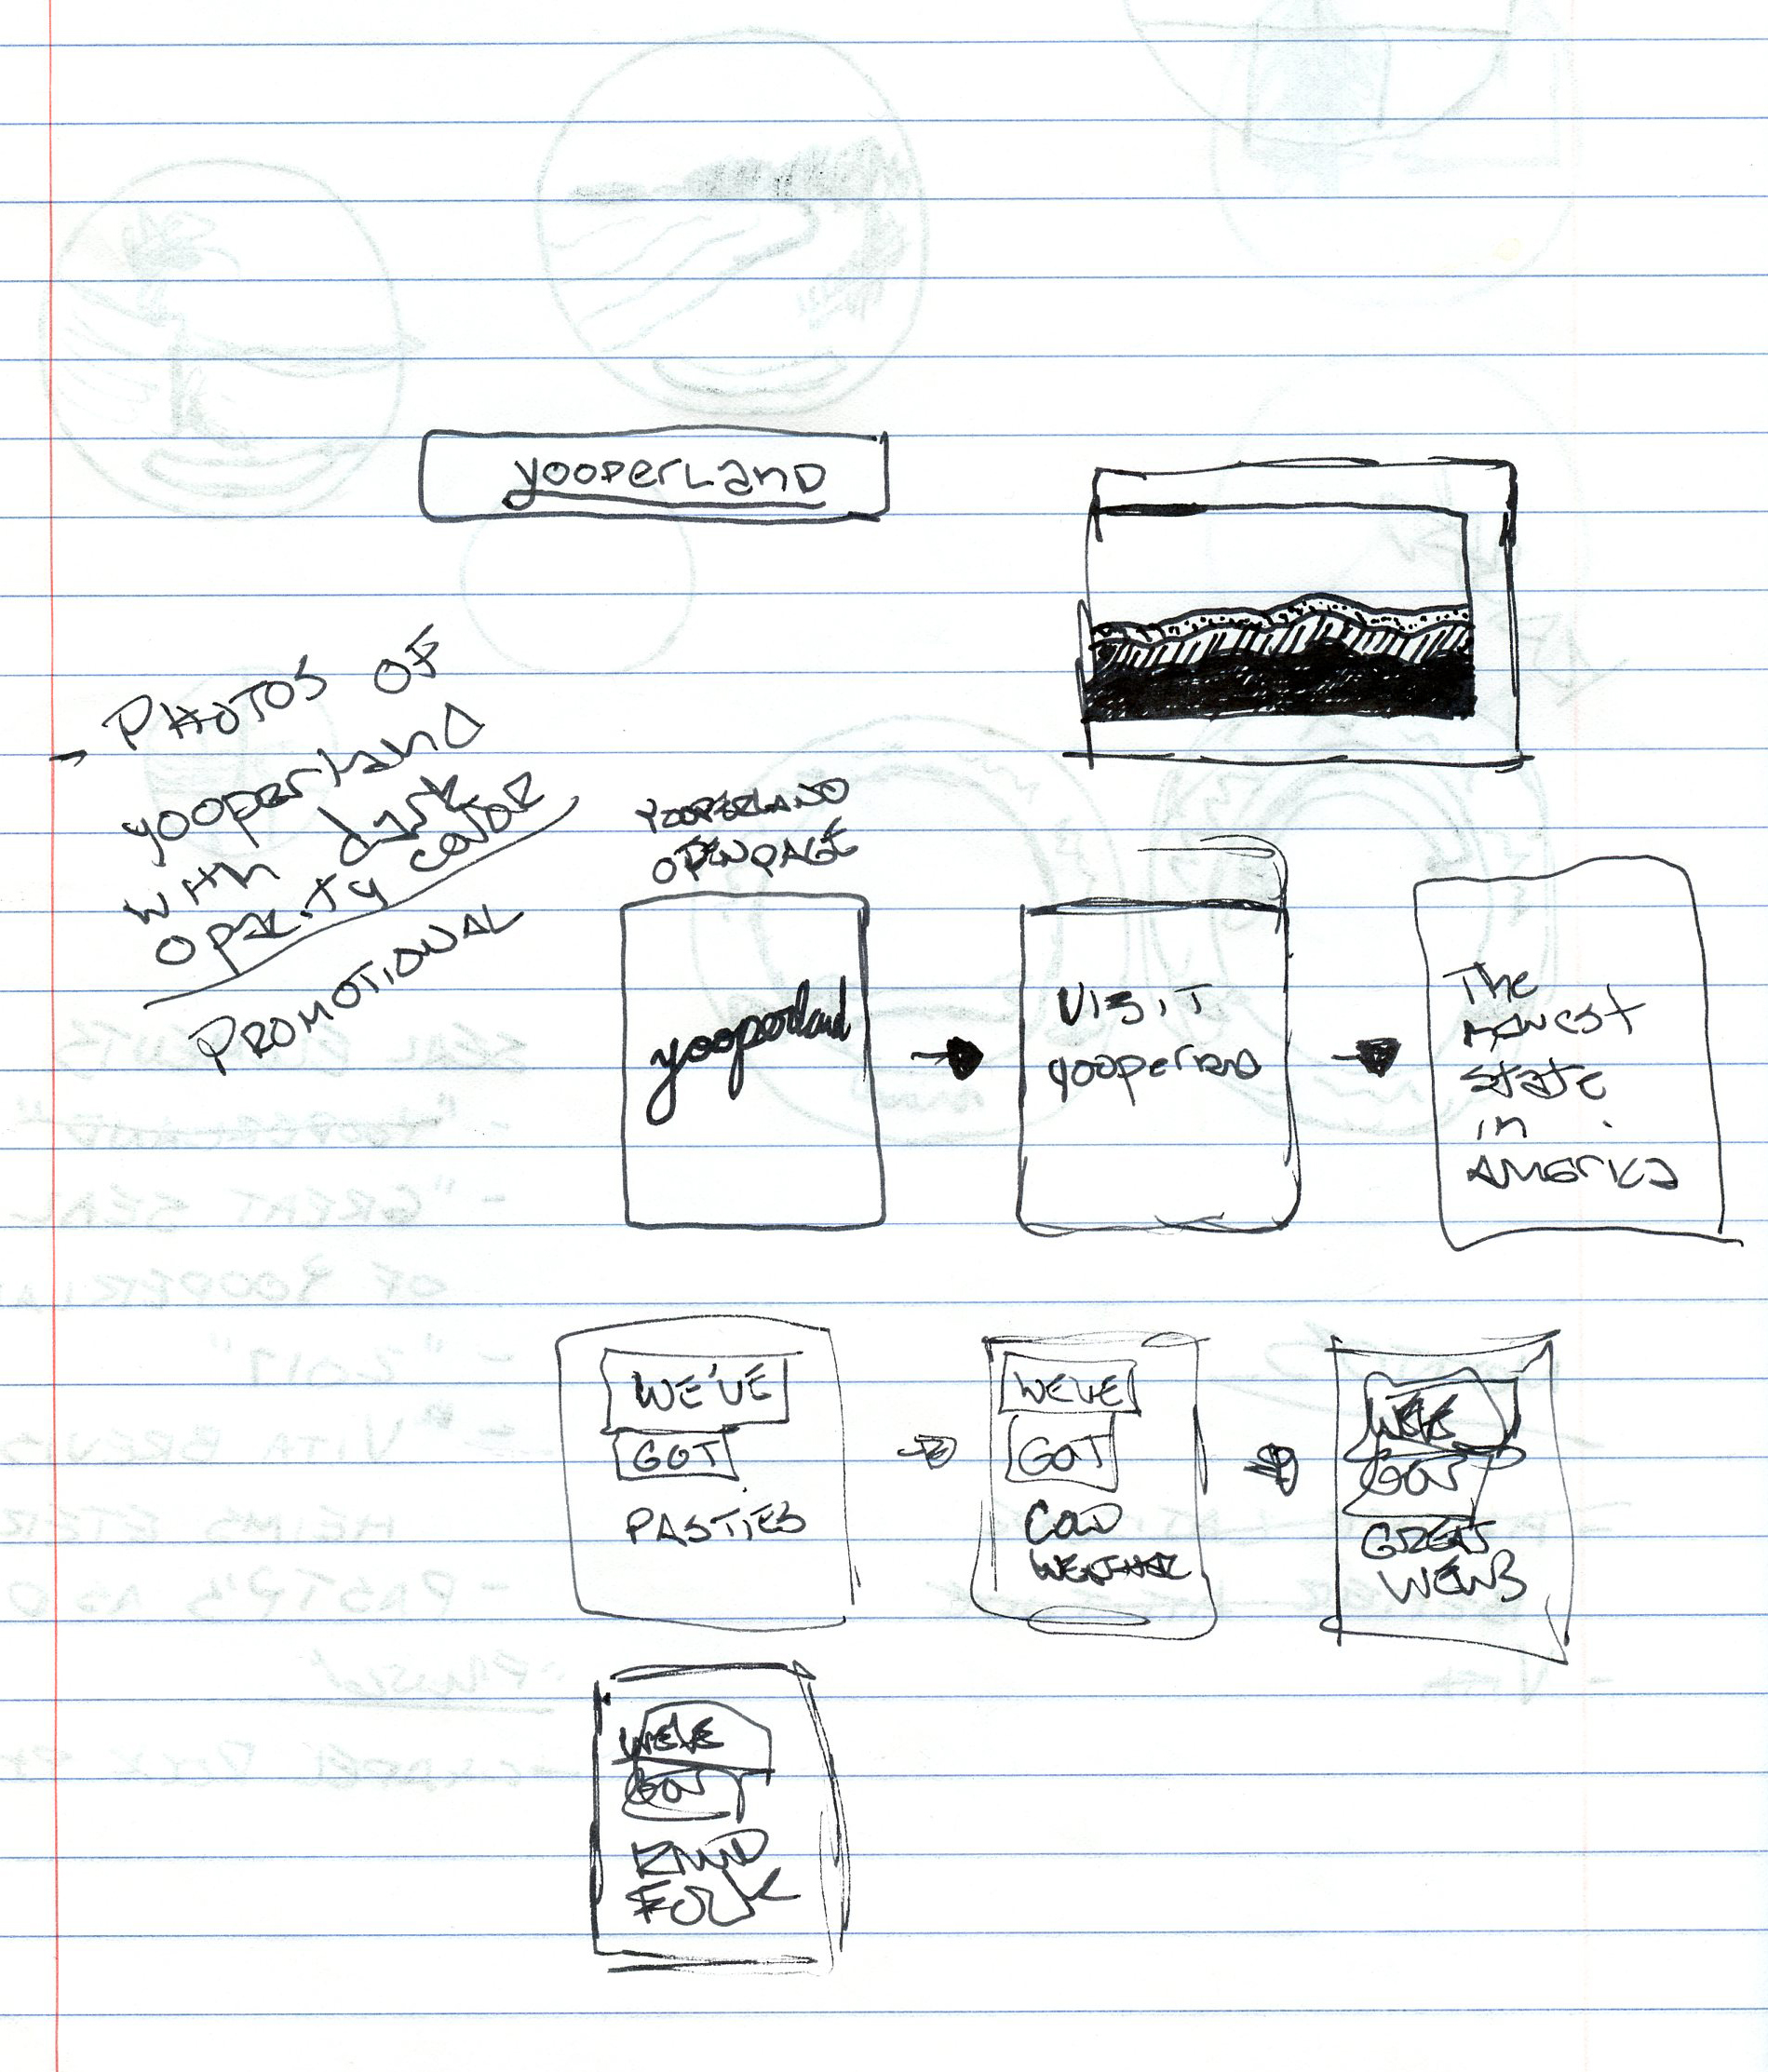 Sketching out ideas for mobile propaganda app.